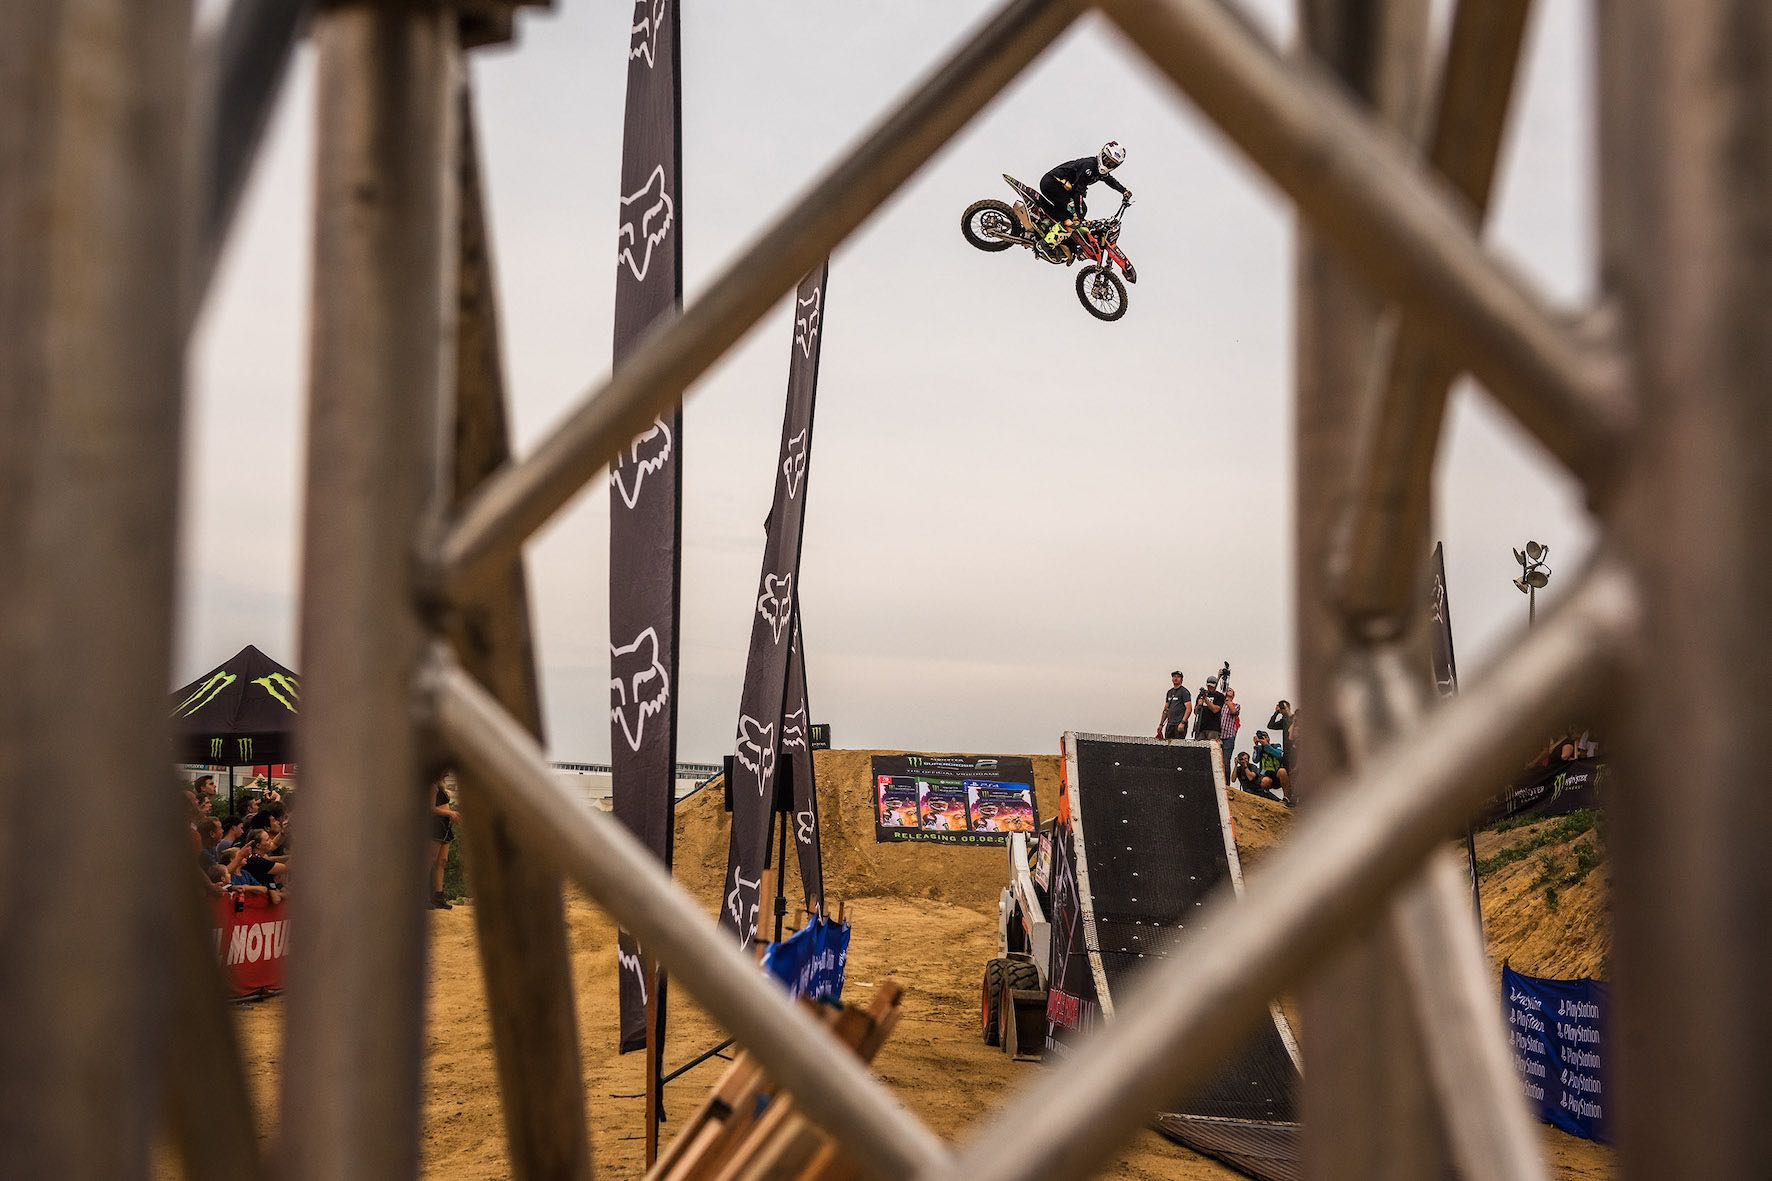 Event review from the King of the Whip 2019 motocross best whip event